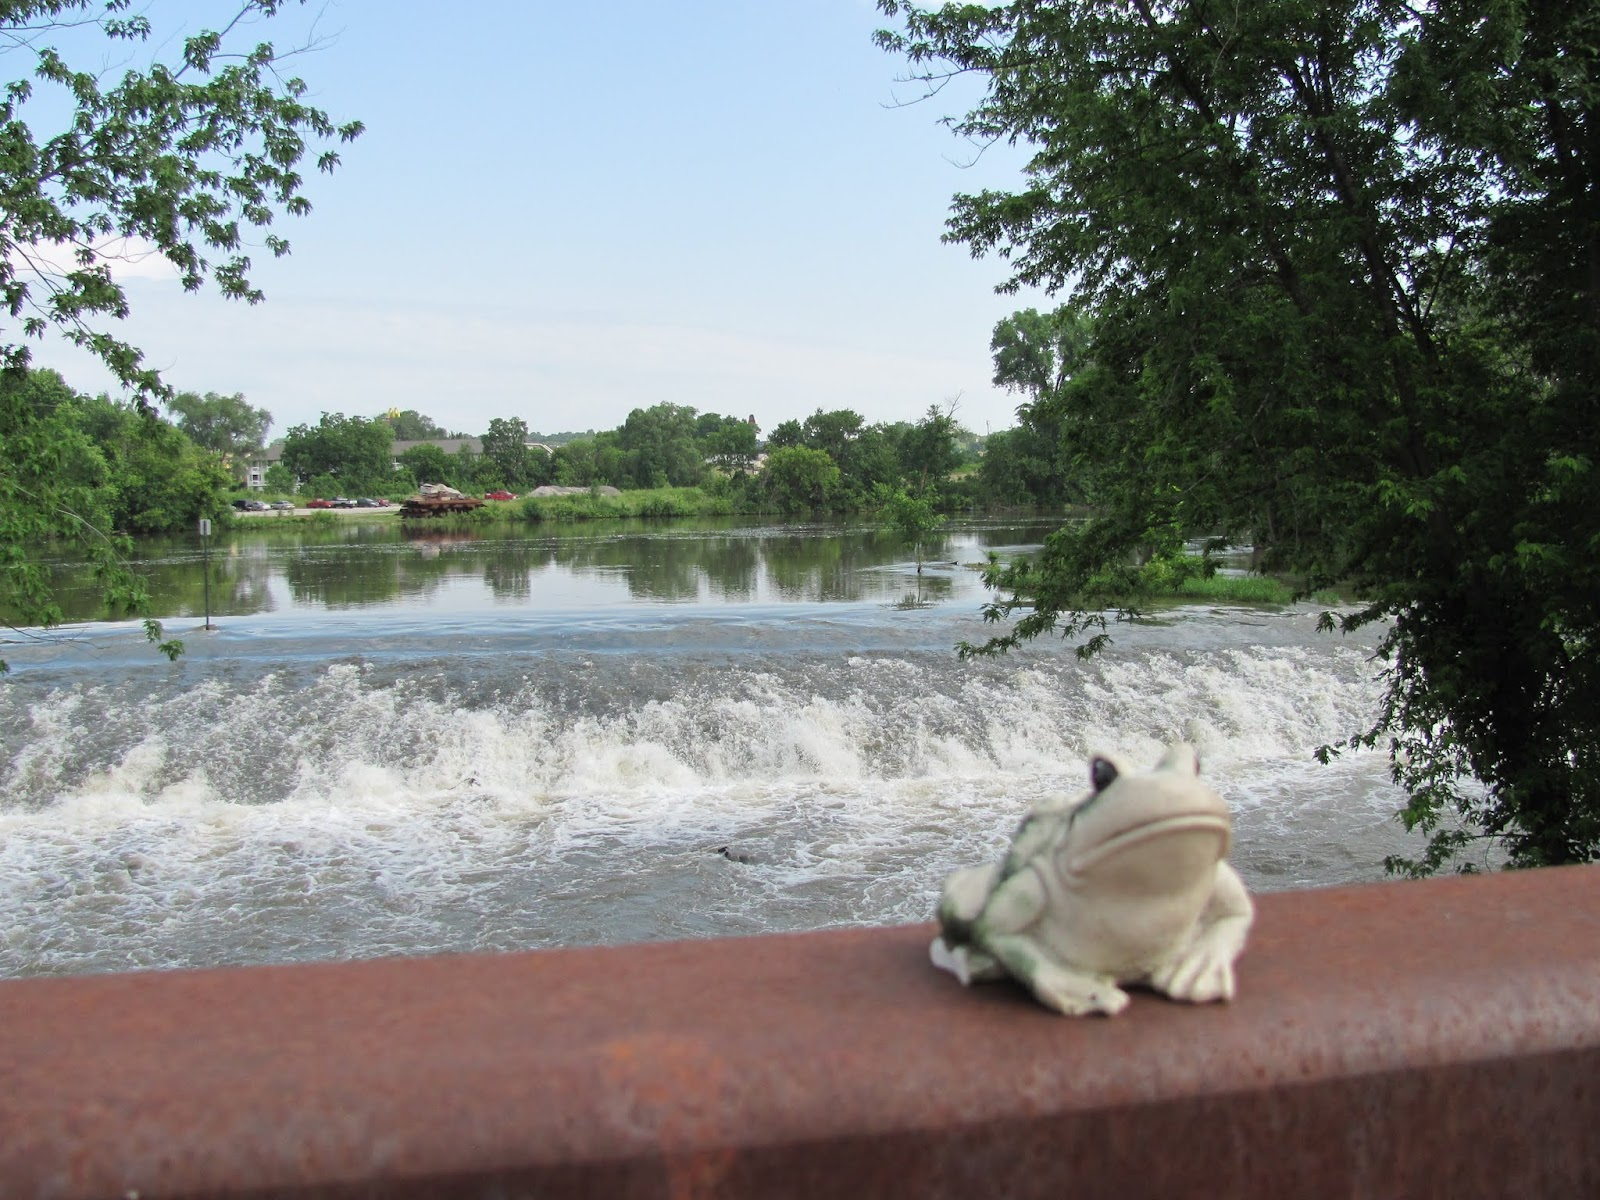 Frog poses on the spillway on the Iowa River Power bridge in Coralville, Iowa